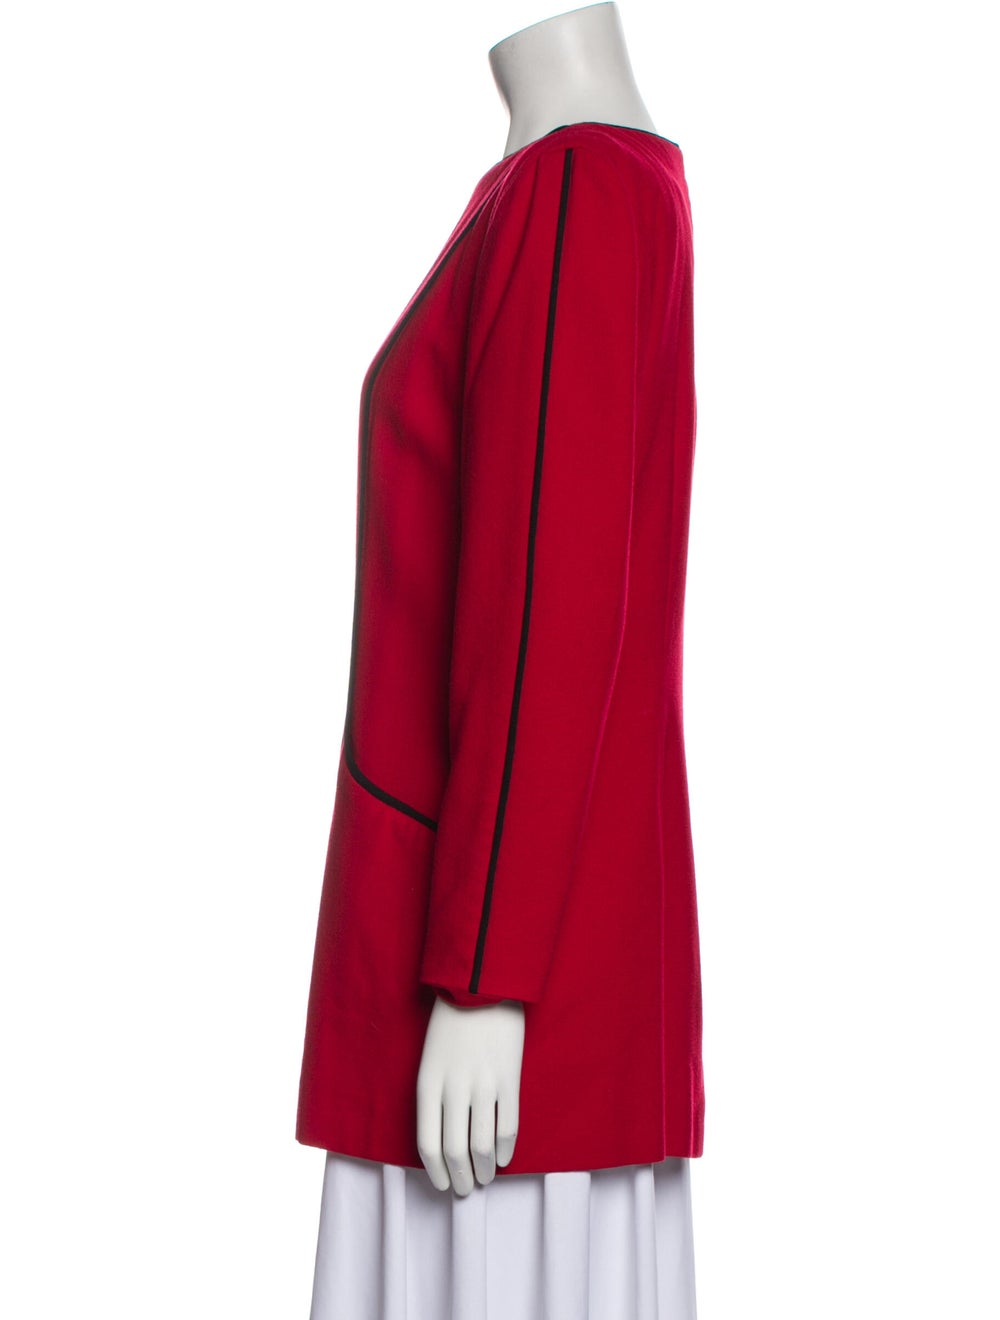 Arnold Scaasi Vintage 1980's Tunic Red - image 2